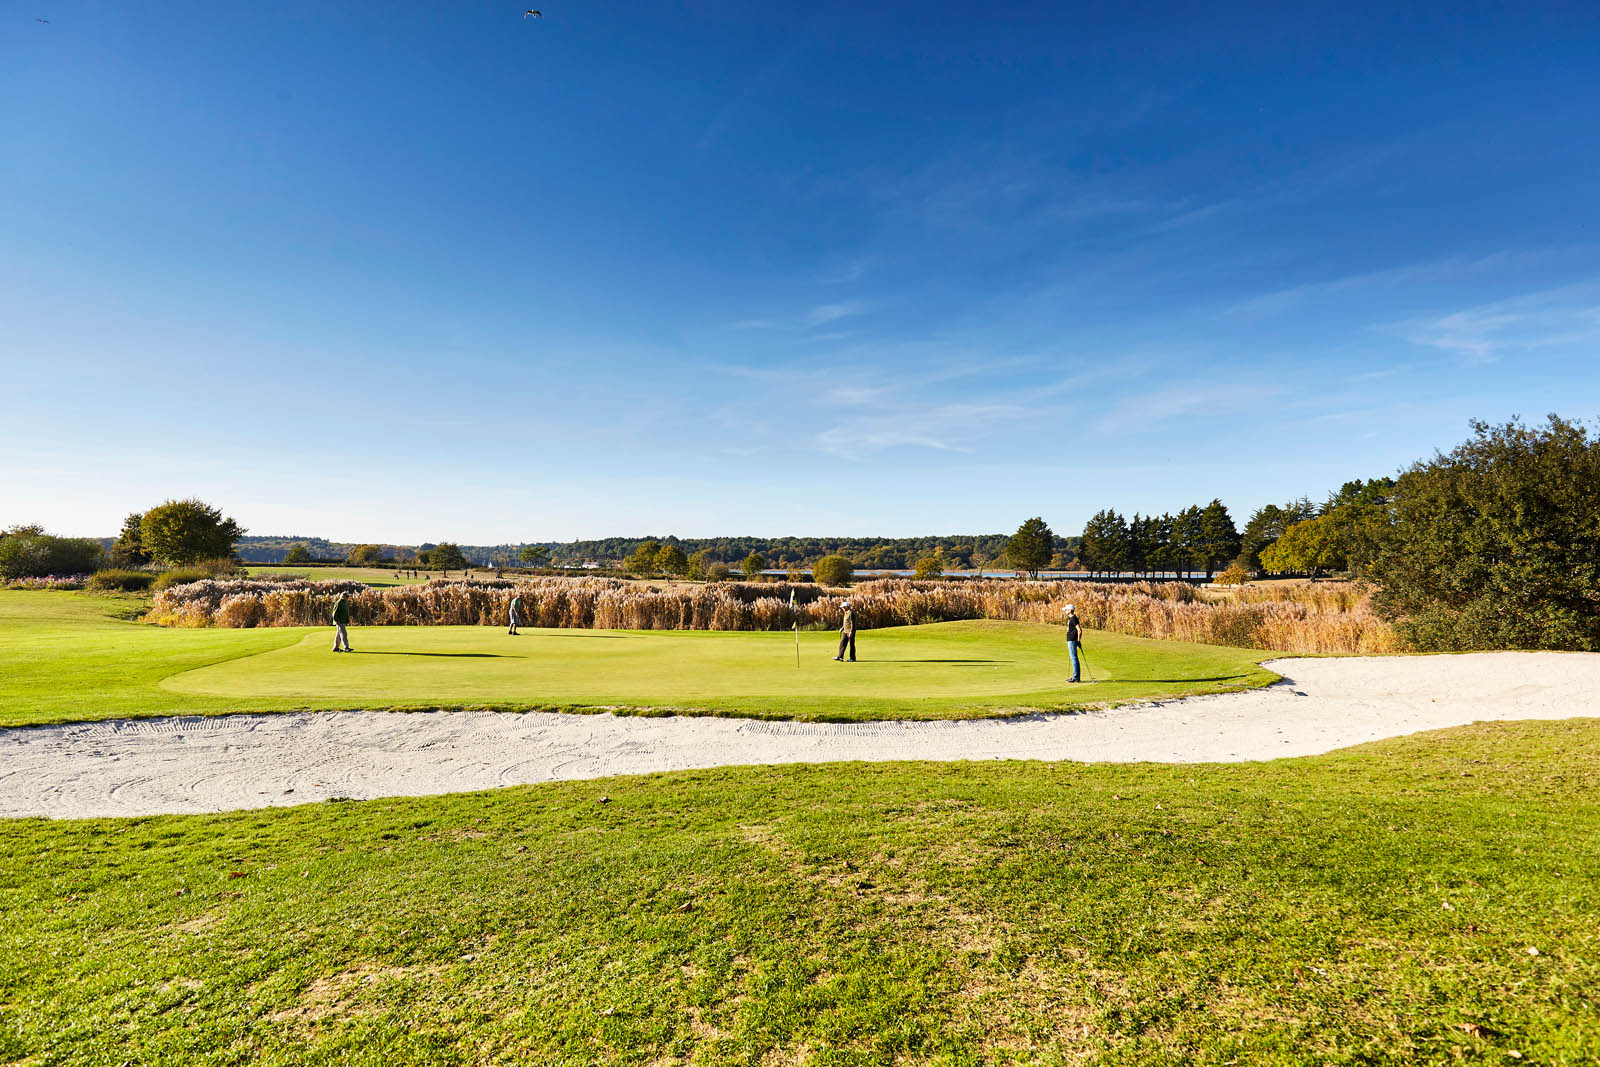 Golf Bluegreen de Marolles-en-Brie